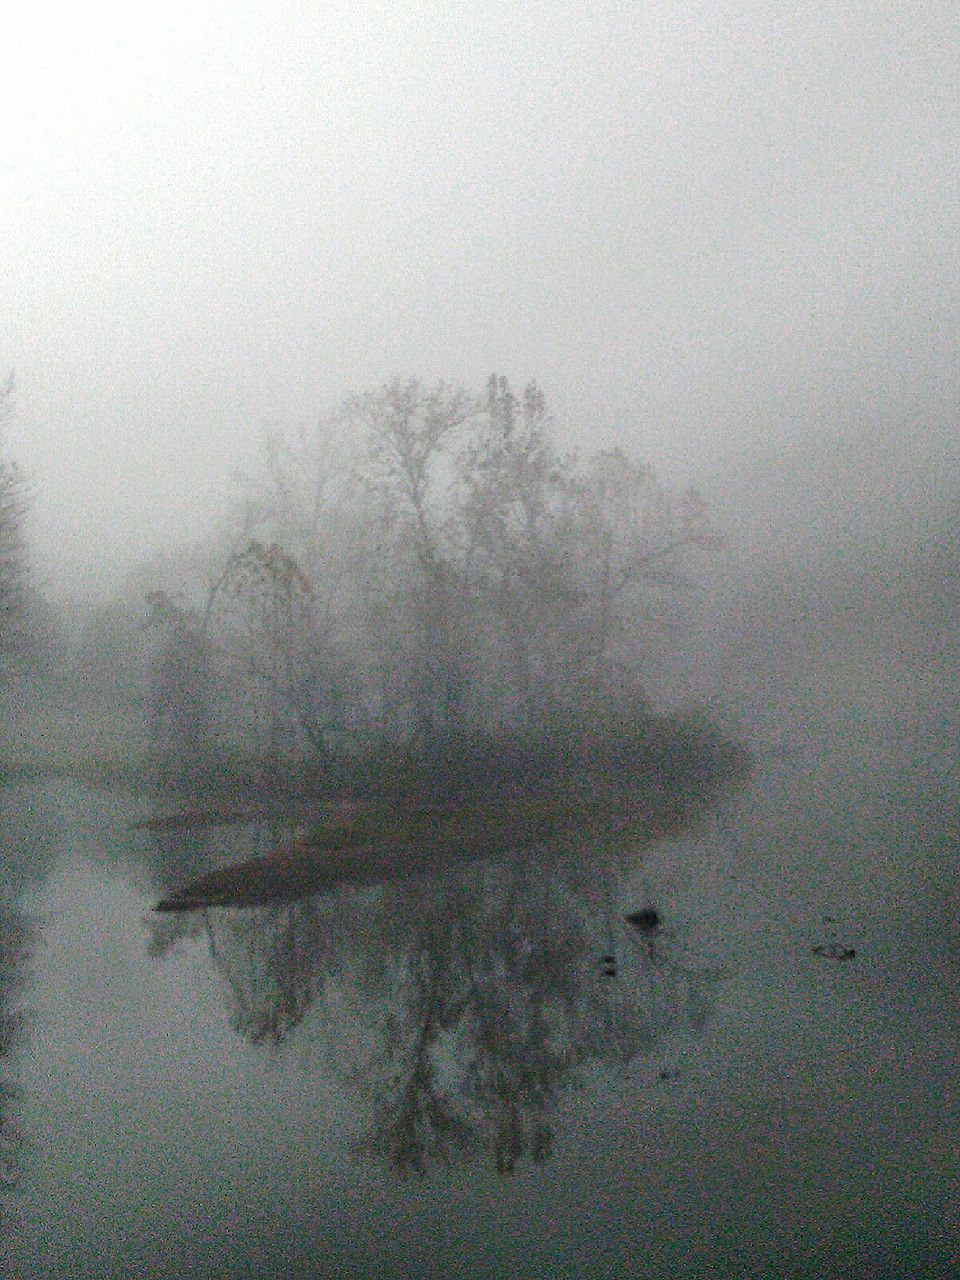 fog, no people, water, nature, outdoors, sky, day, scenics, beauty in nature